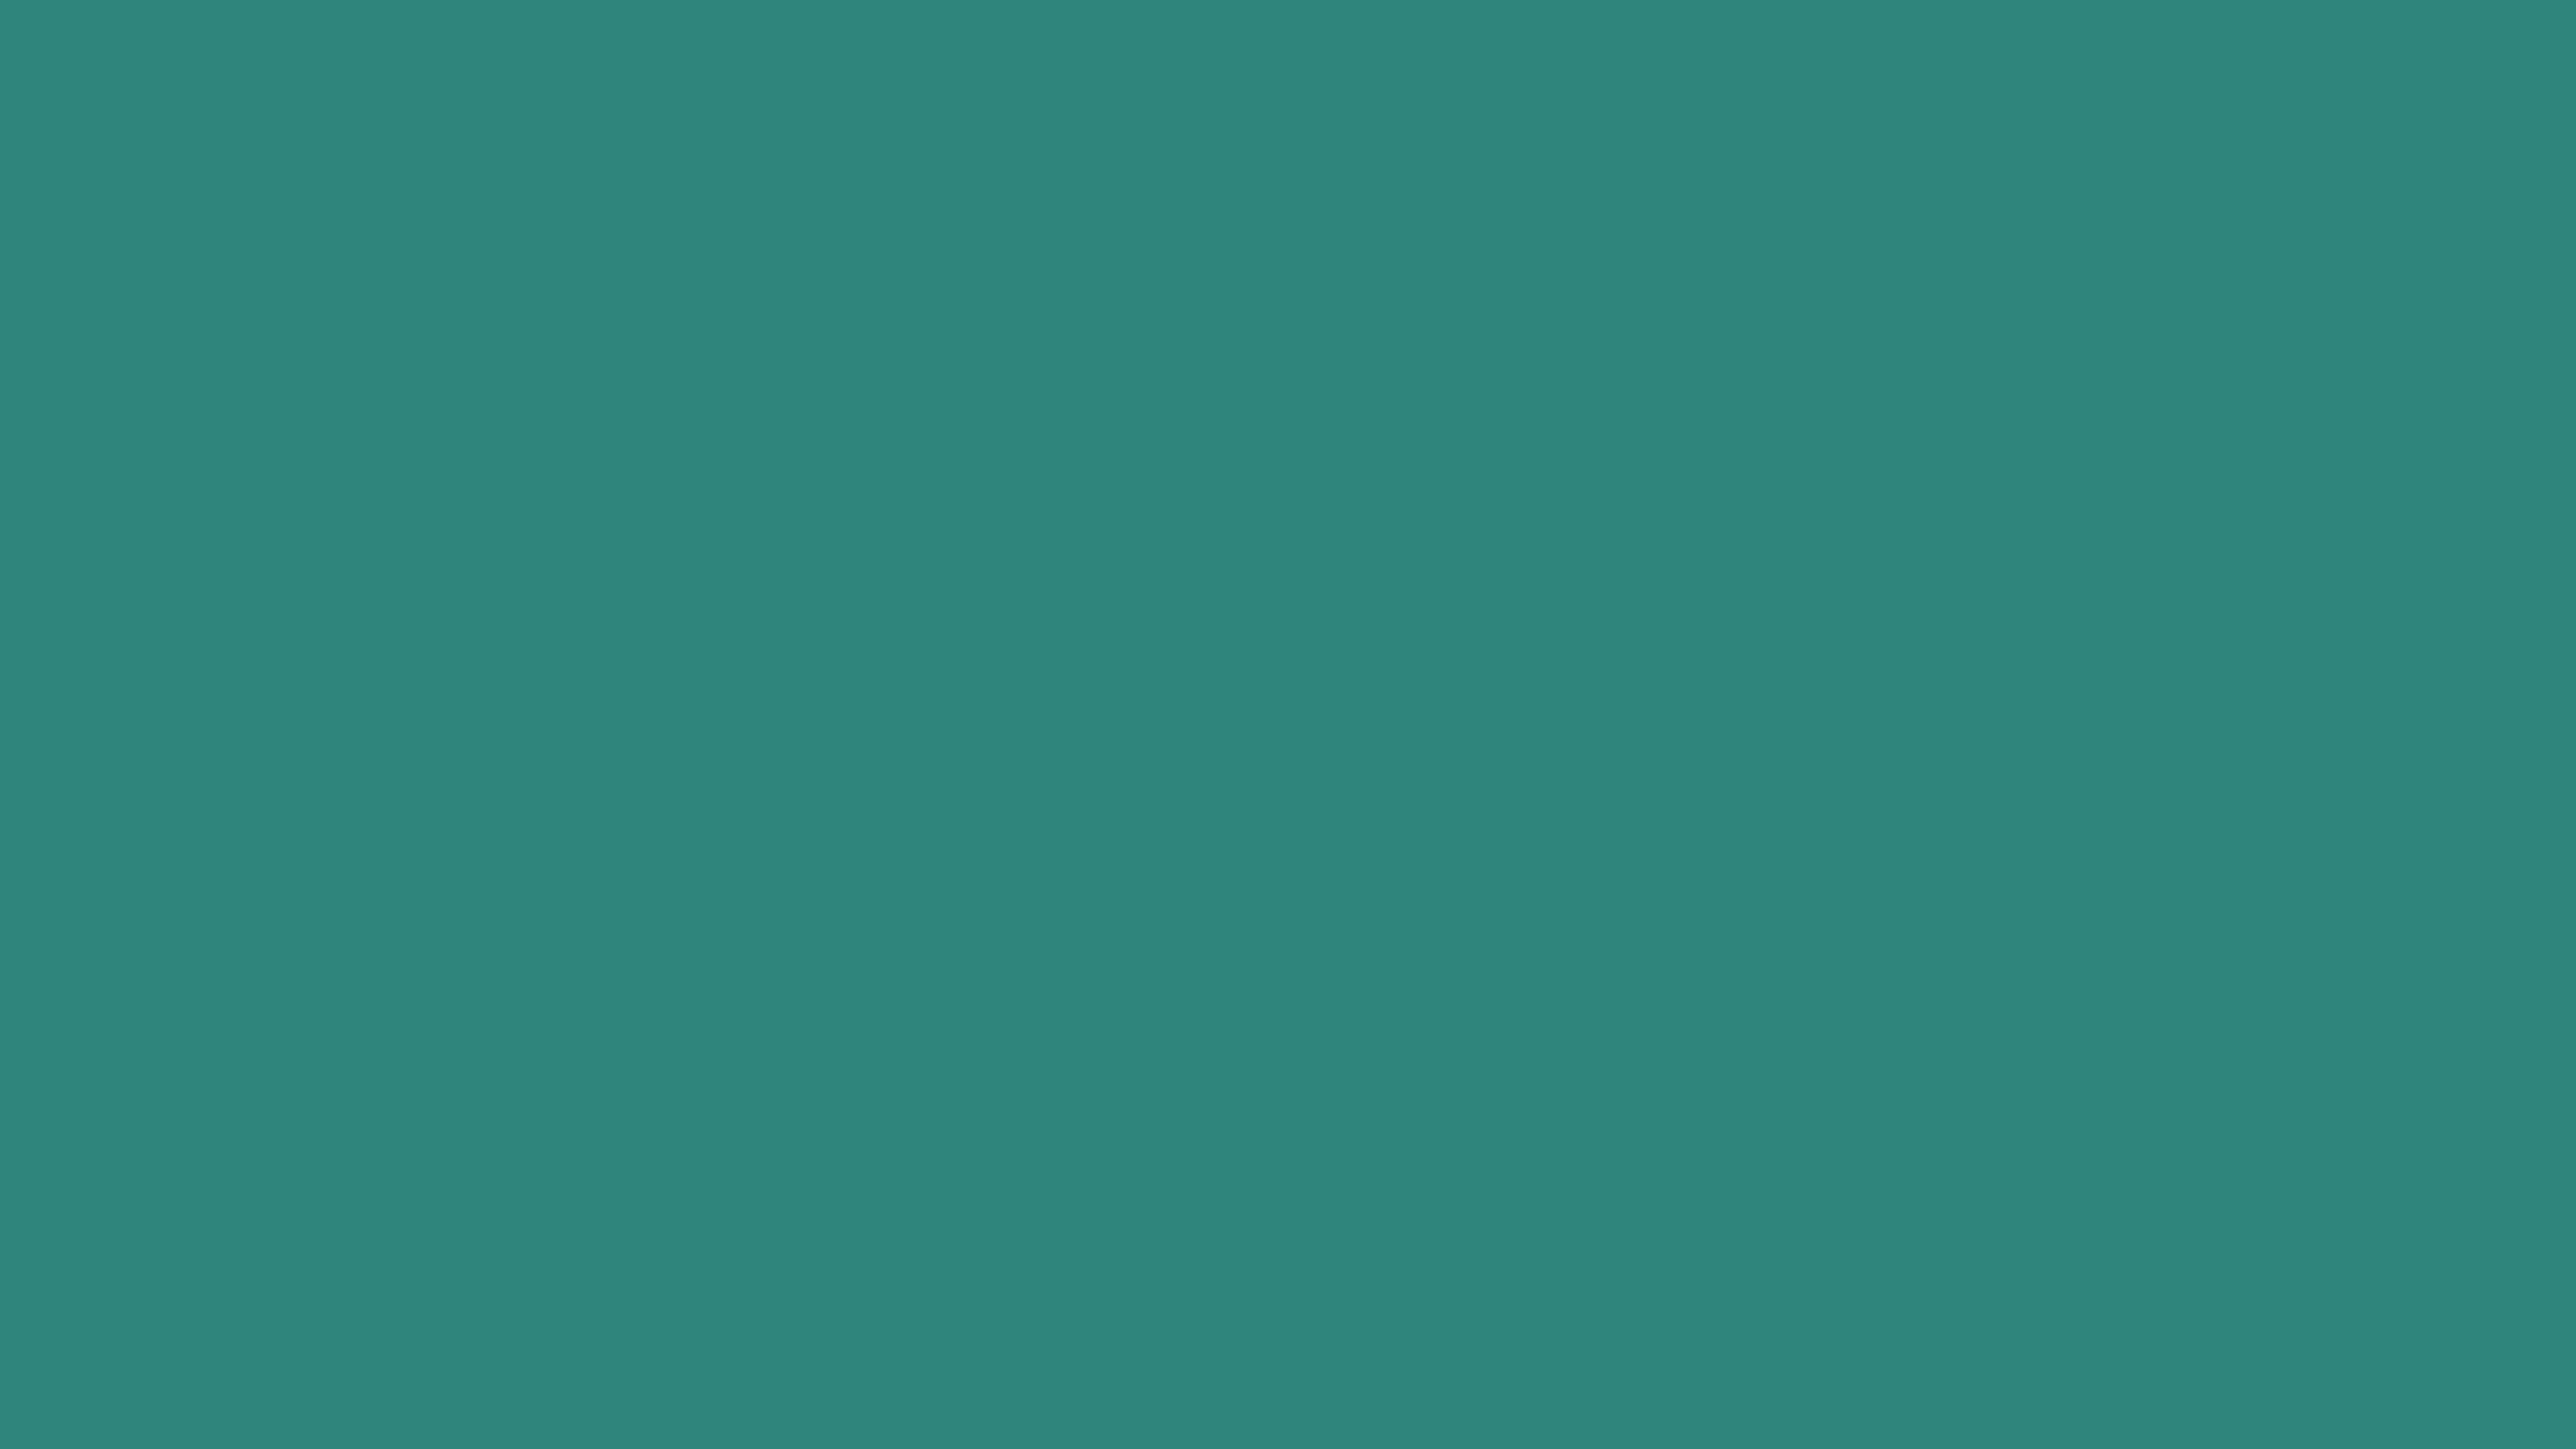 4096x2304 Celadon Green Solid Color Background